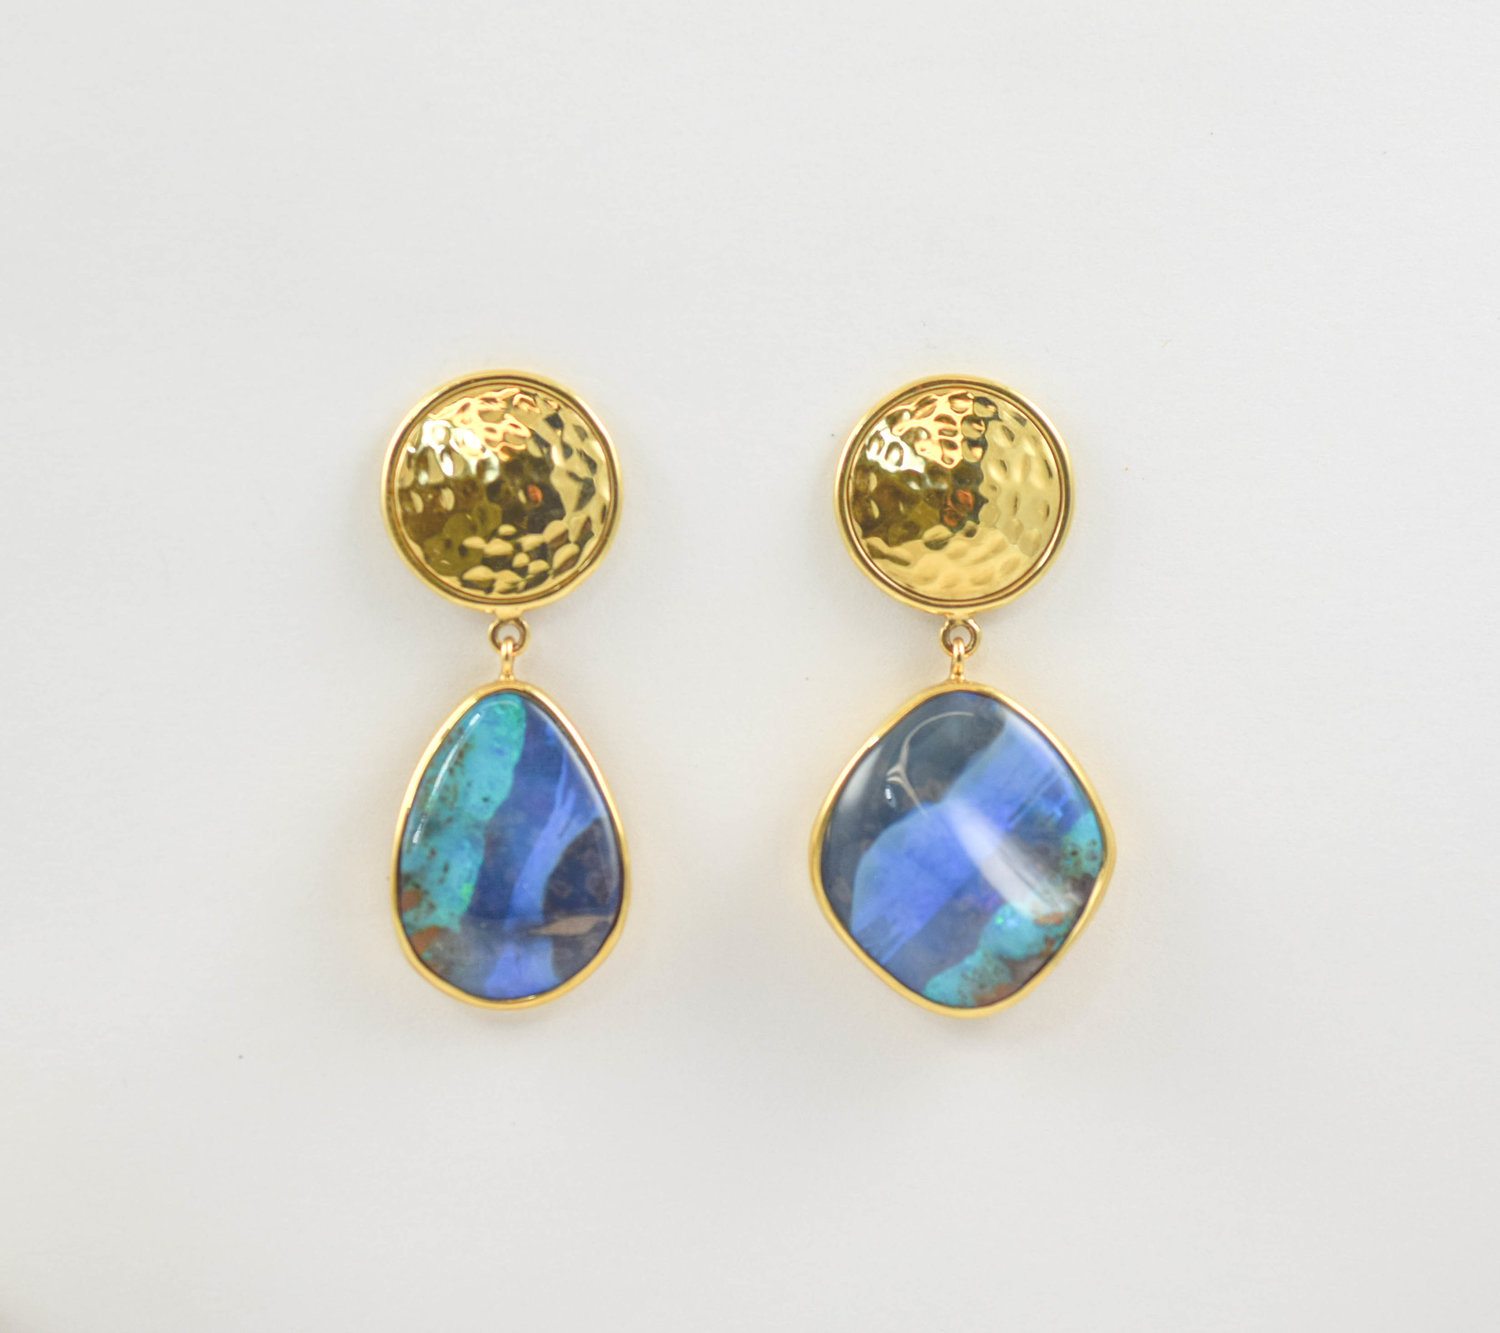 14k Yellow Gold Australian Opal Earrings The Jewelbox